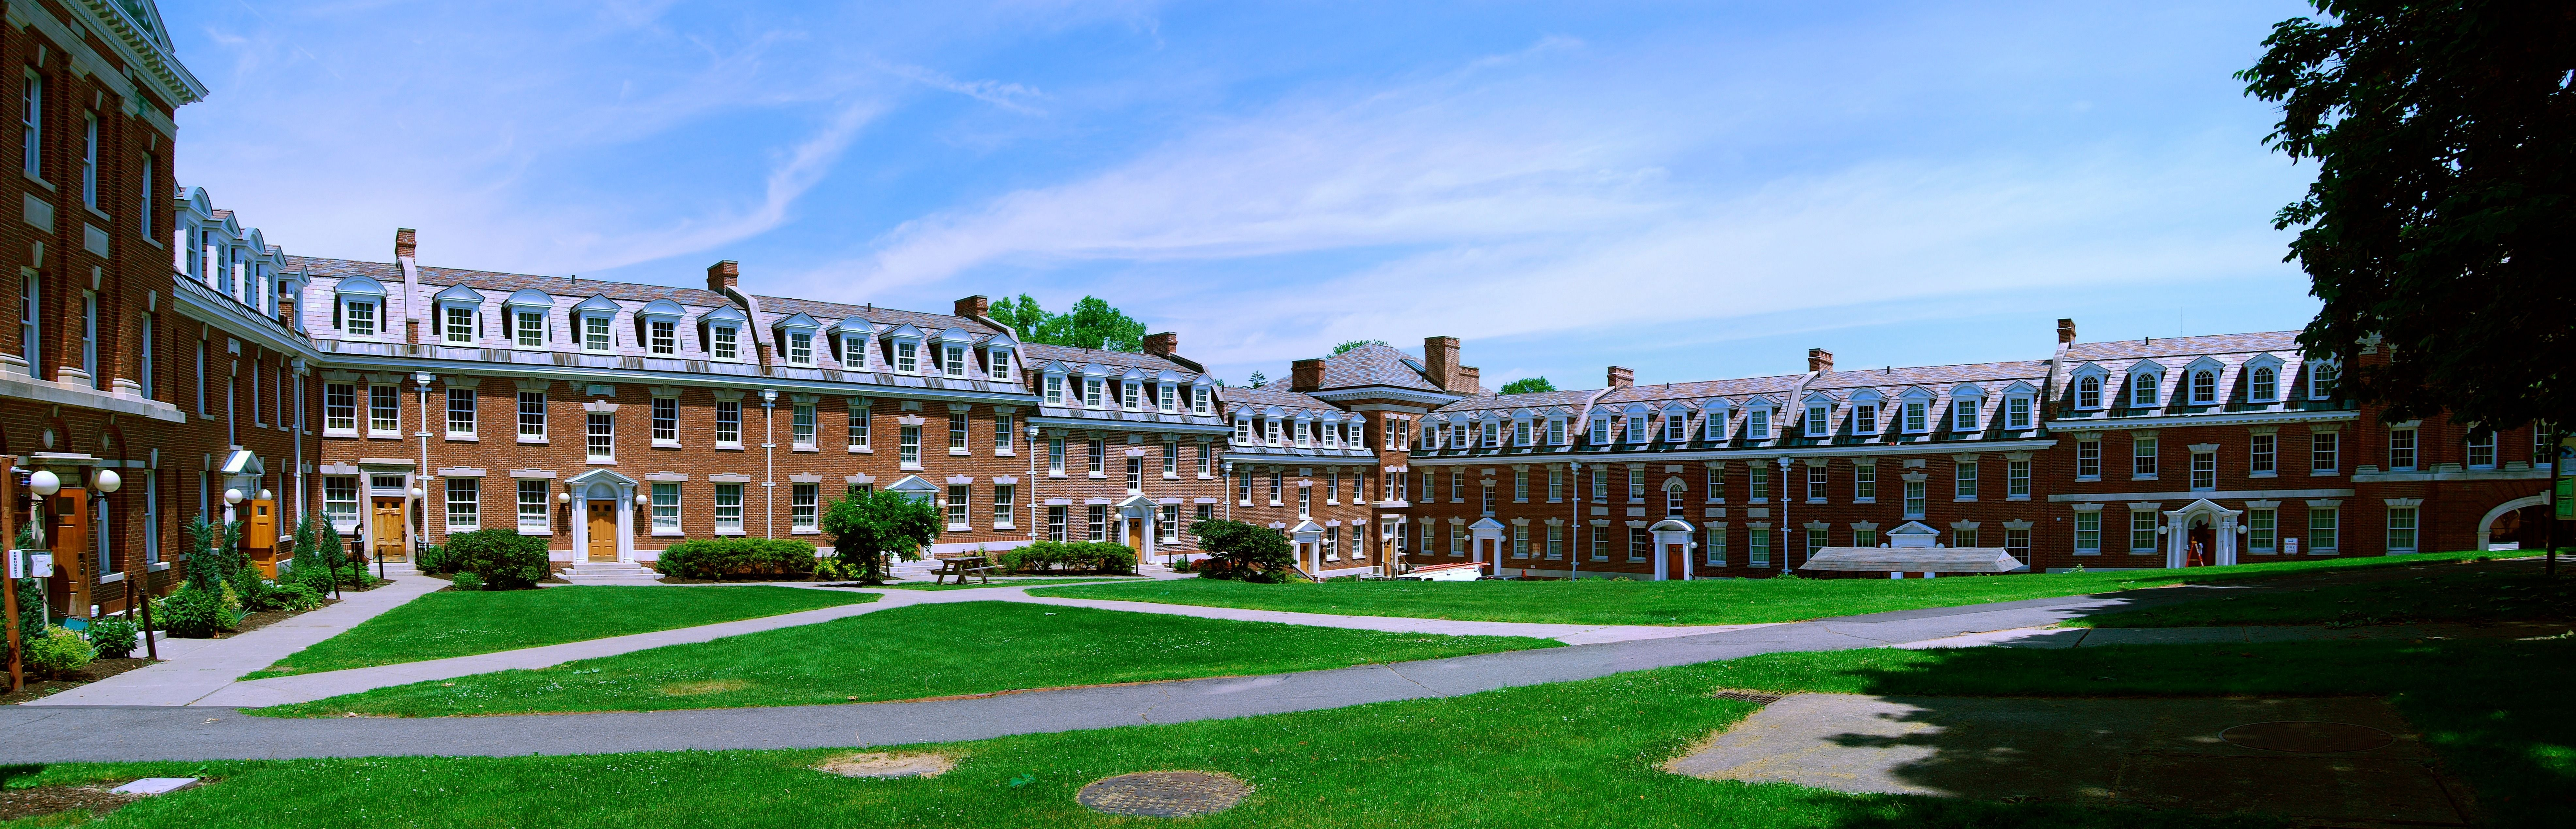 The quad at Rensselaer Polytechnic Institute.